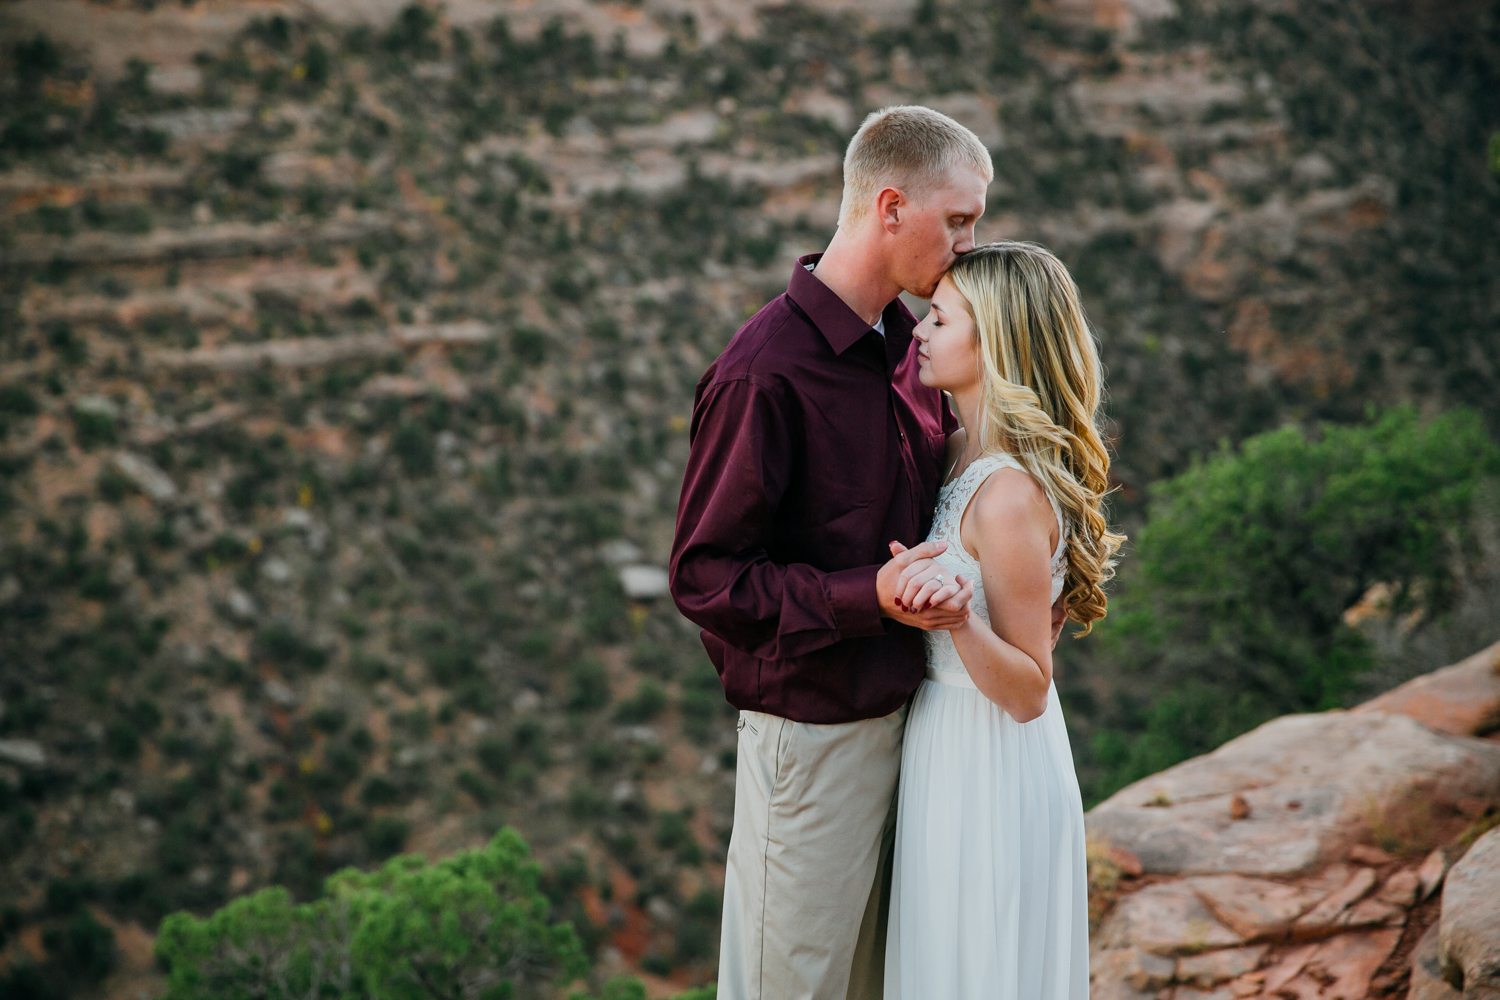 grand-junction-colorado-monument-wedding-photographer-engagements-38.jpg